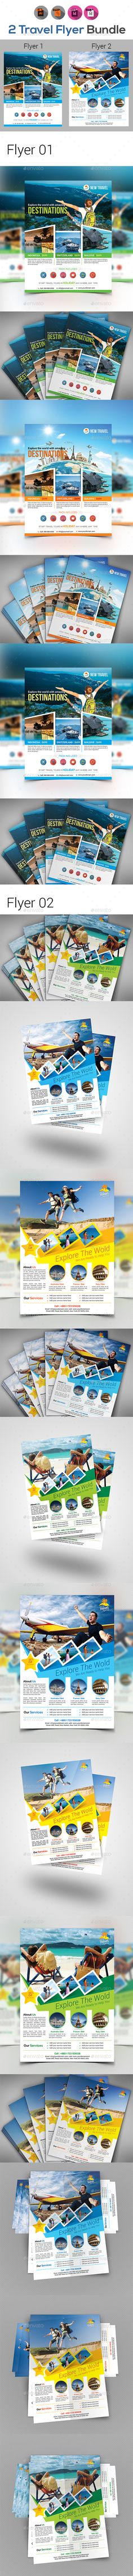 Holiday Tour & Travel Flyer Bundle - Templates Vector EPS, InDesign INDD, AI Illustrator